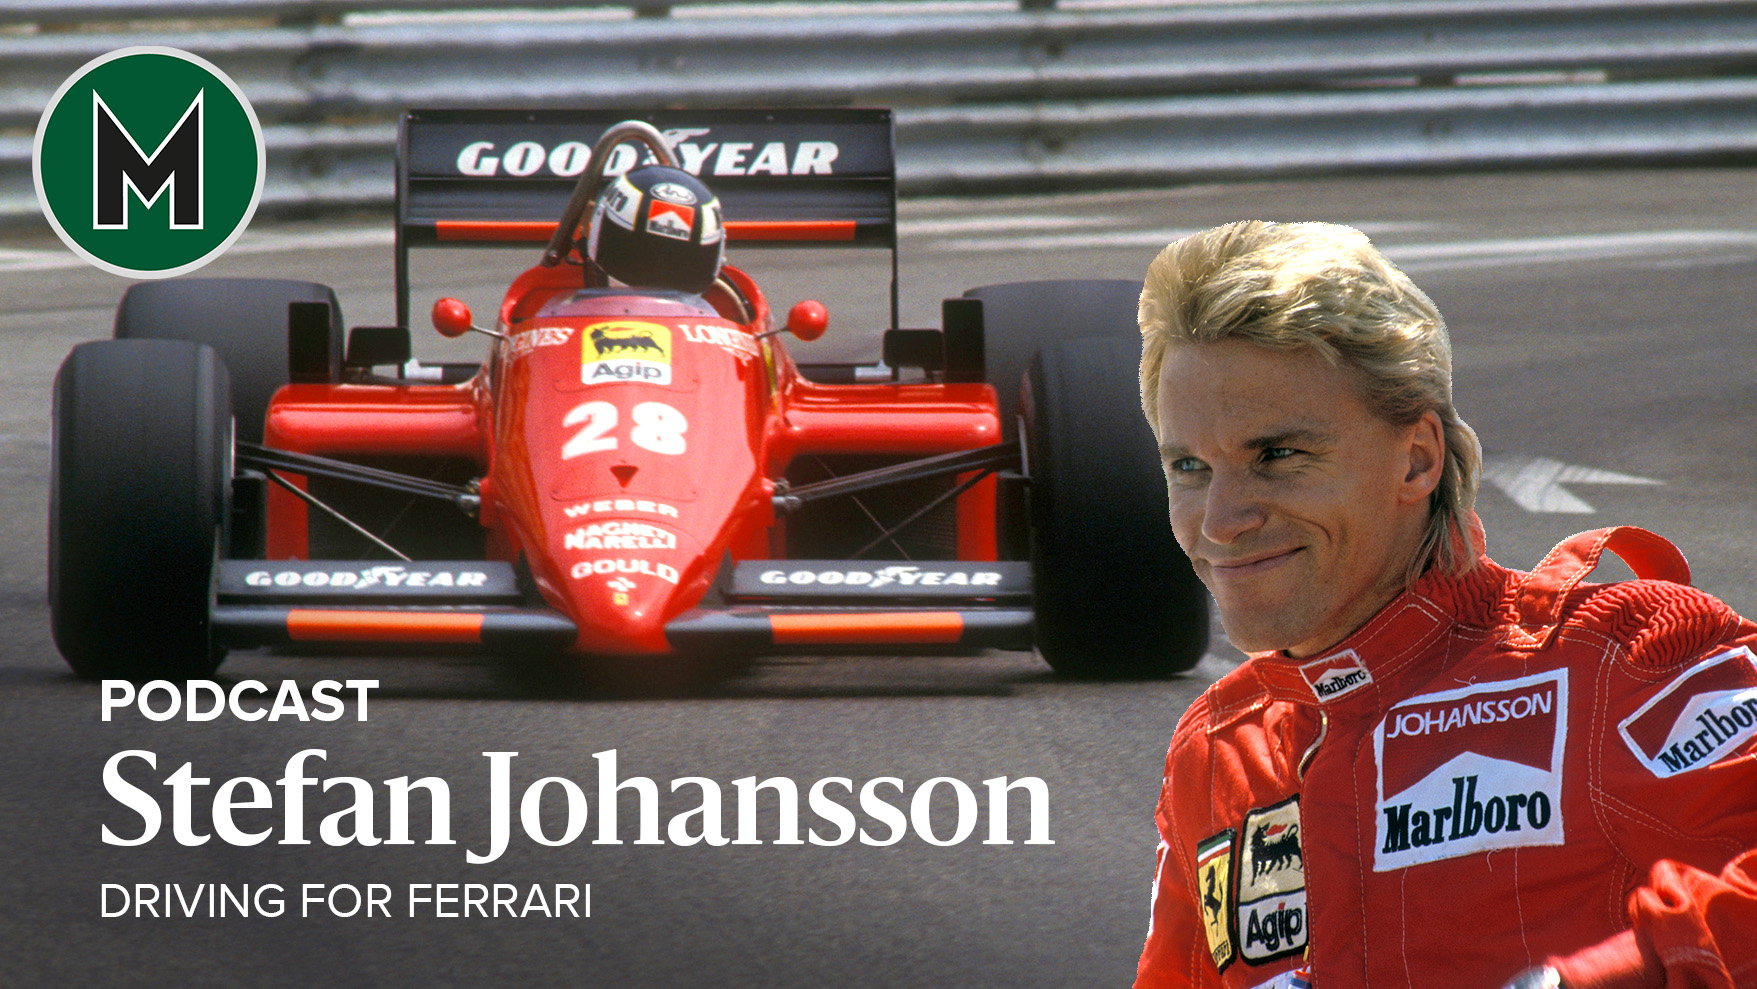 Podcast: Stefan Johansson, Driving for Ferrari